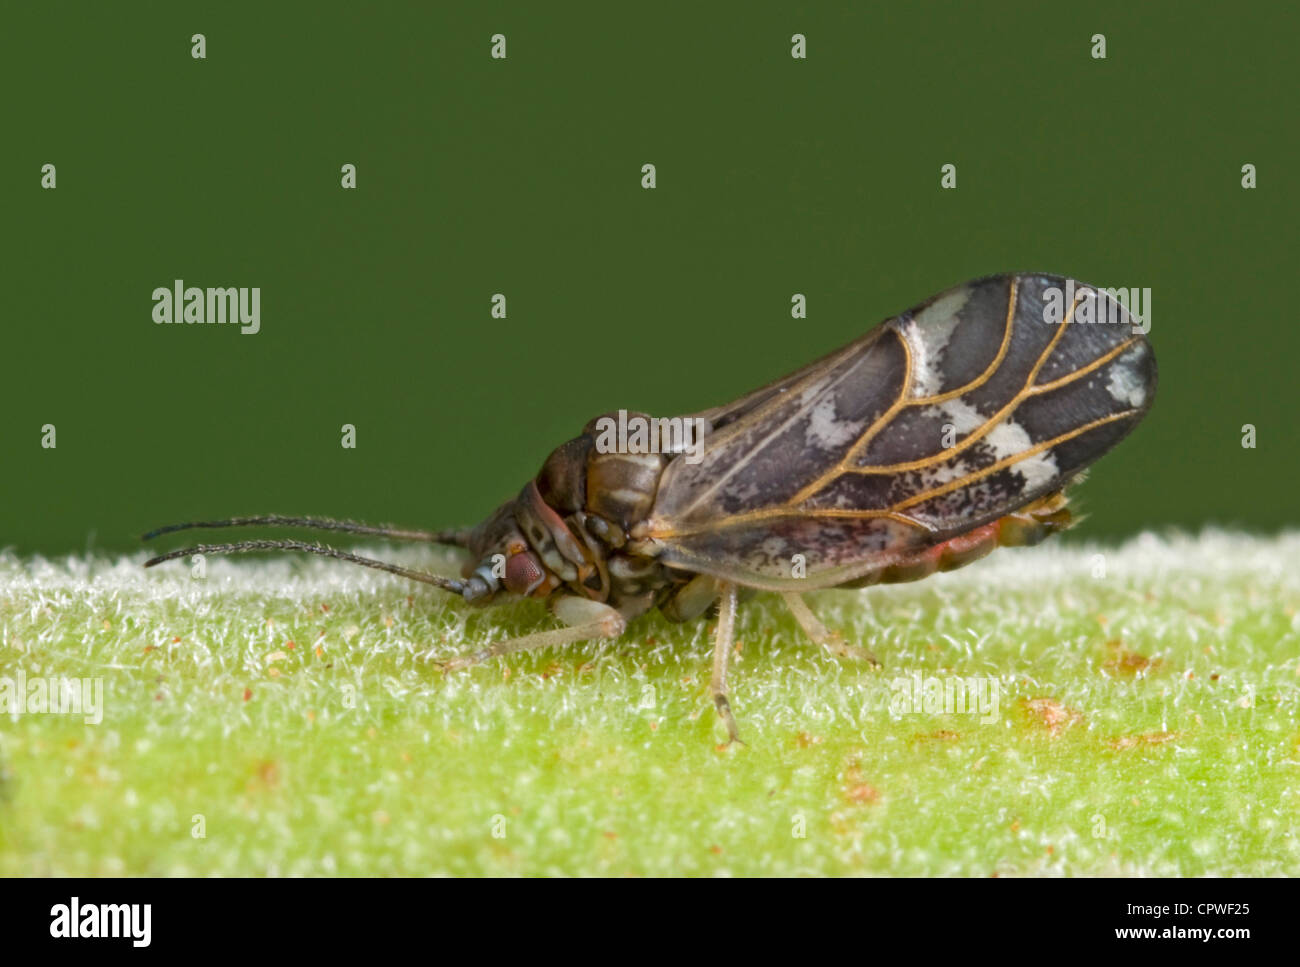 Wattle psyllid adult insect - Stock Image